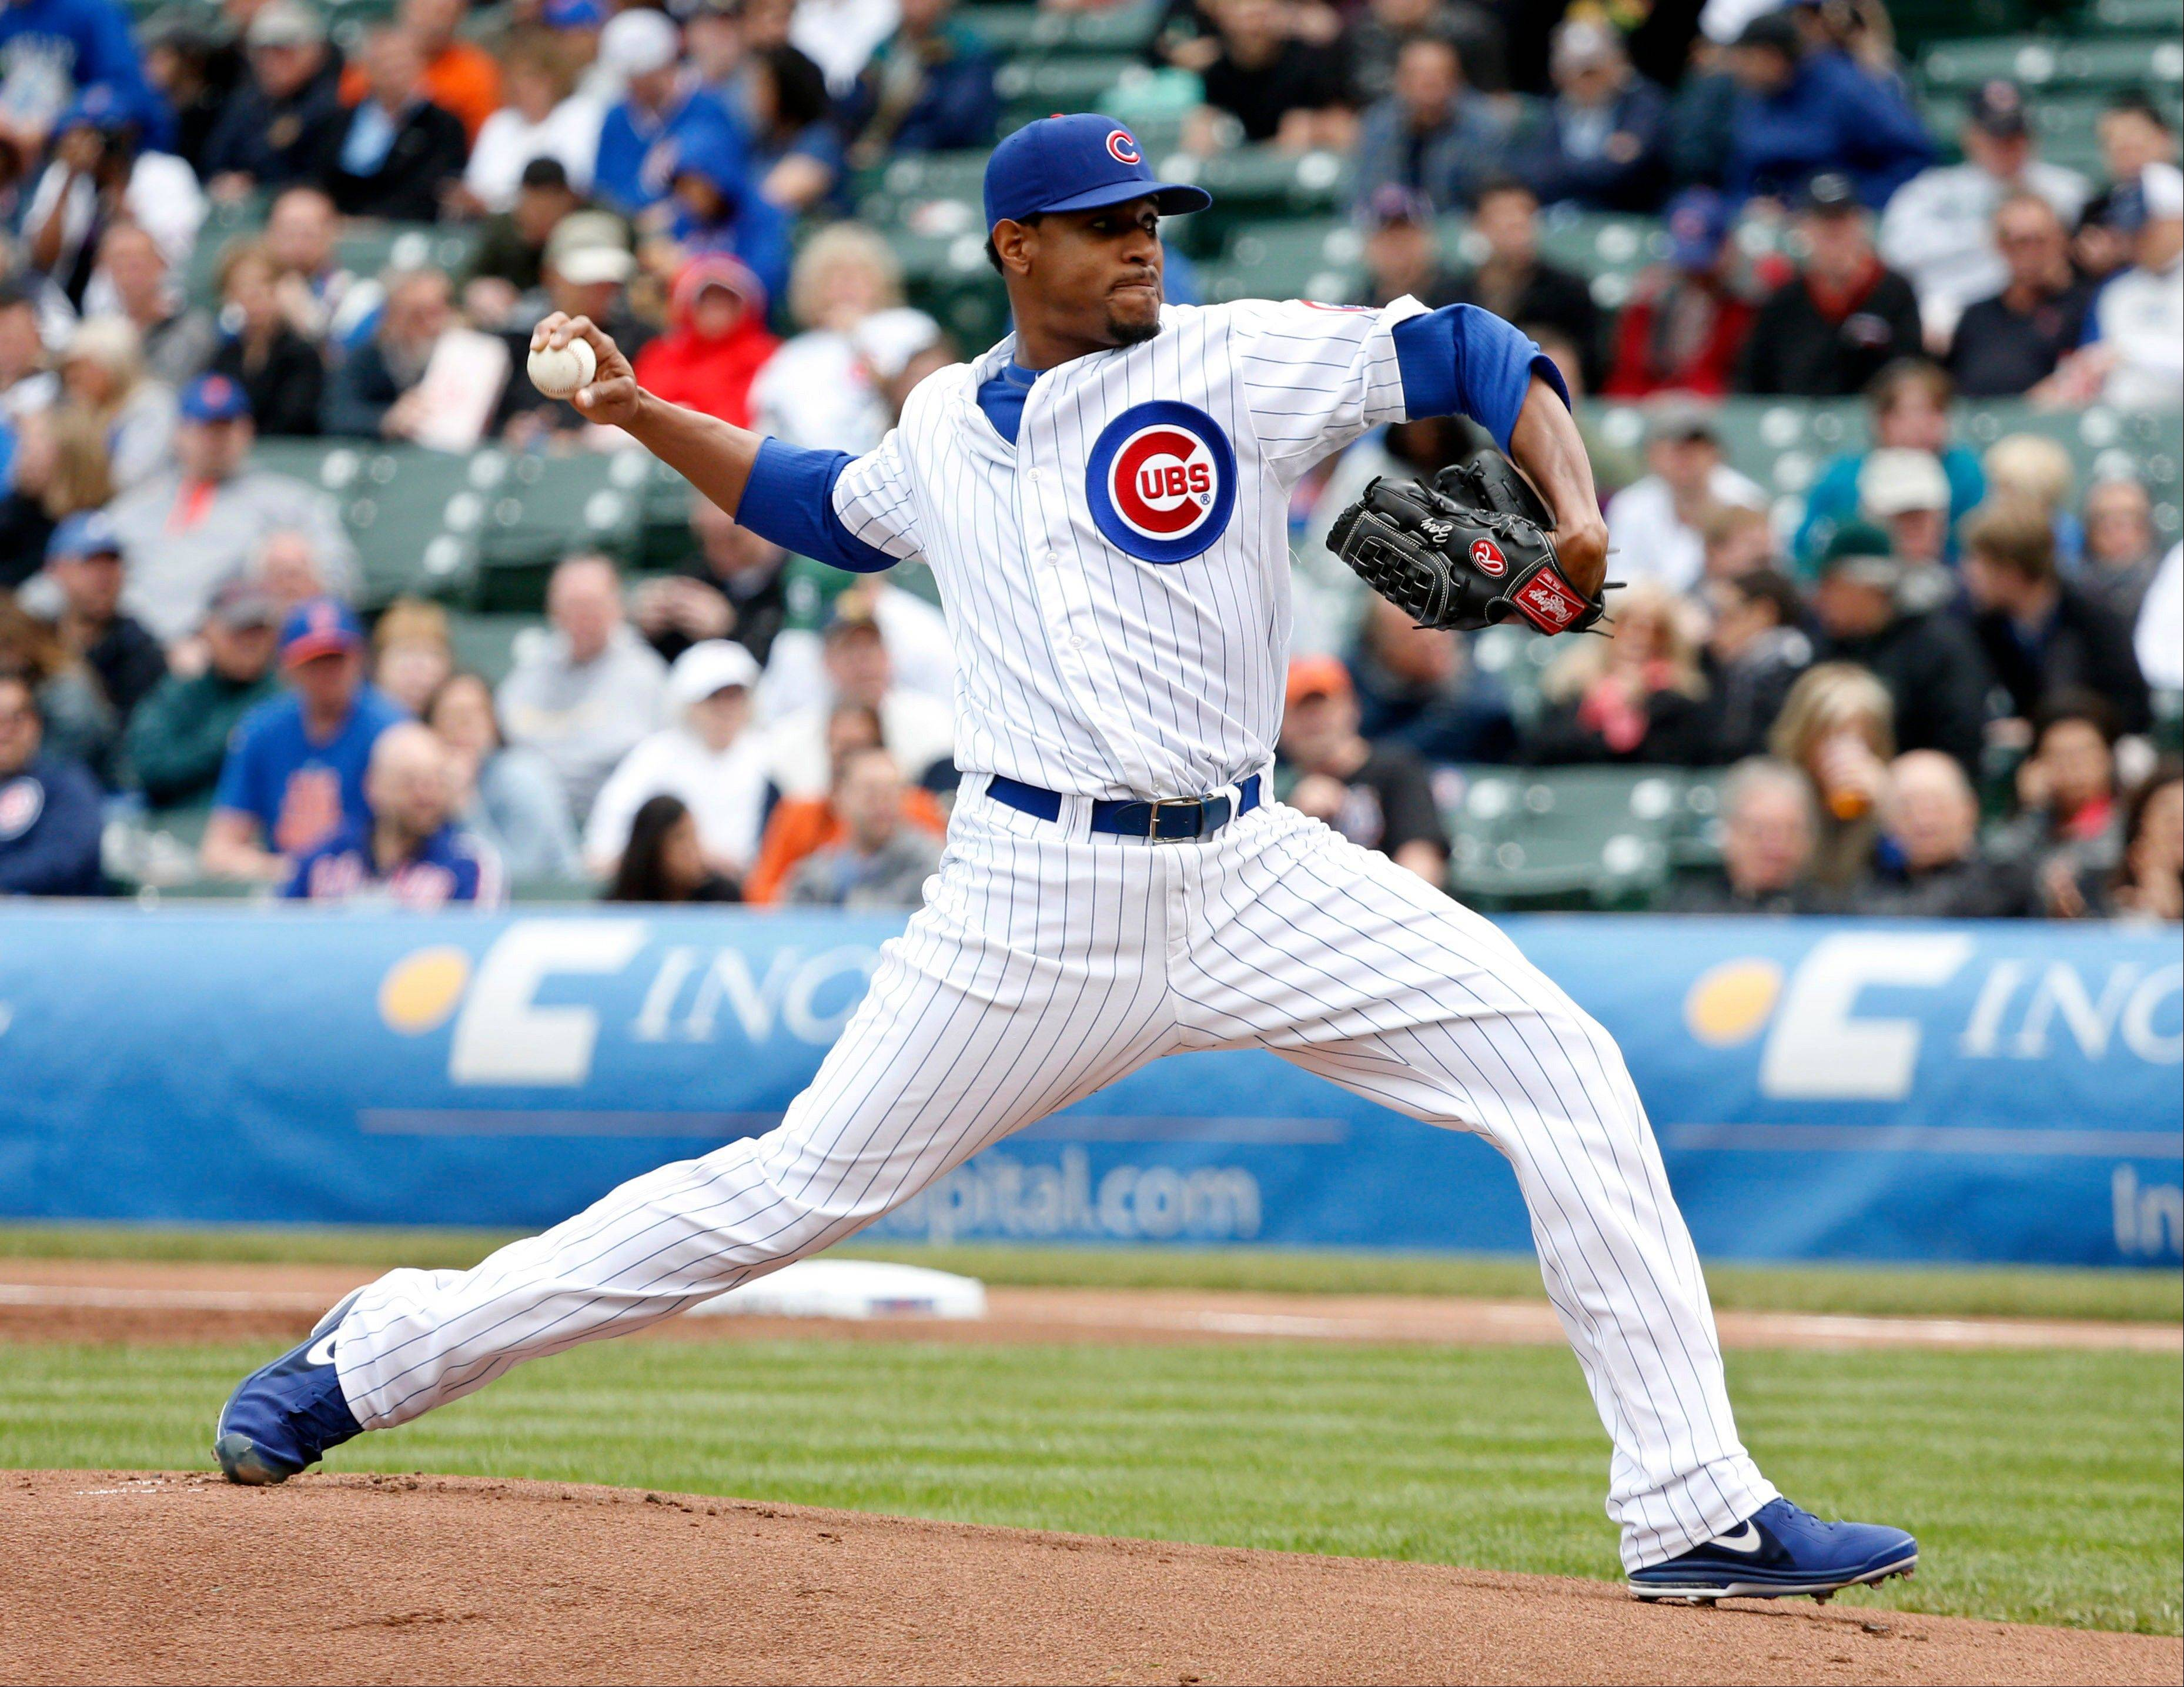 Cubs starting pitcher Edwin Jackson recorded his first quality start since April 25, working 6 innings and allowing 3 runs on 7 hits in a 3-2 loss to the Mets on Friday at Wrigley Field.